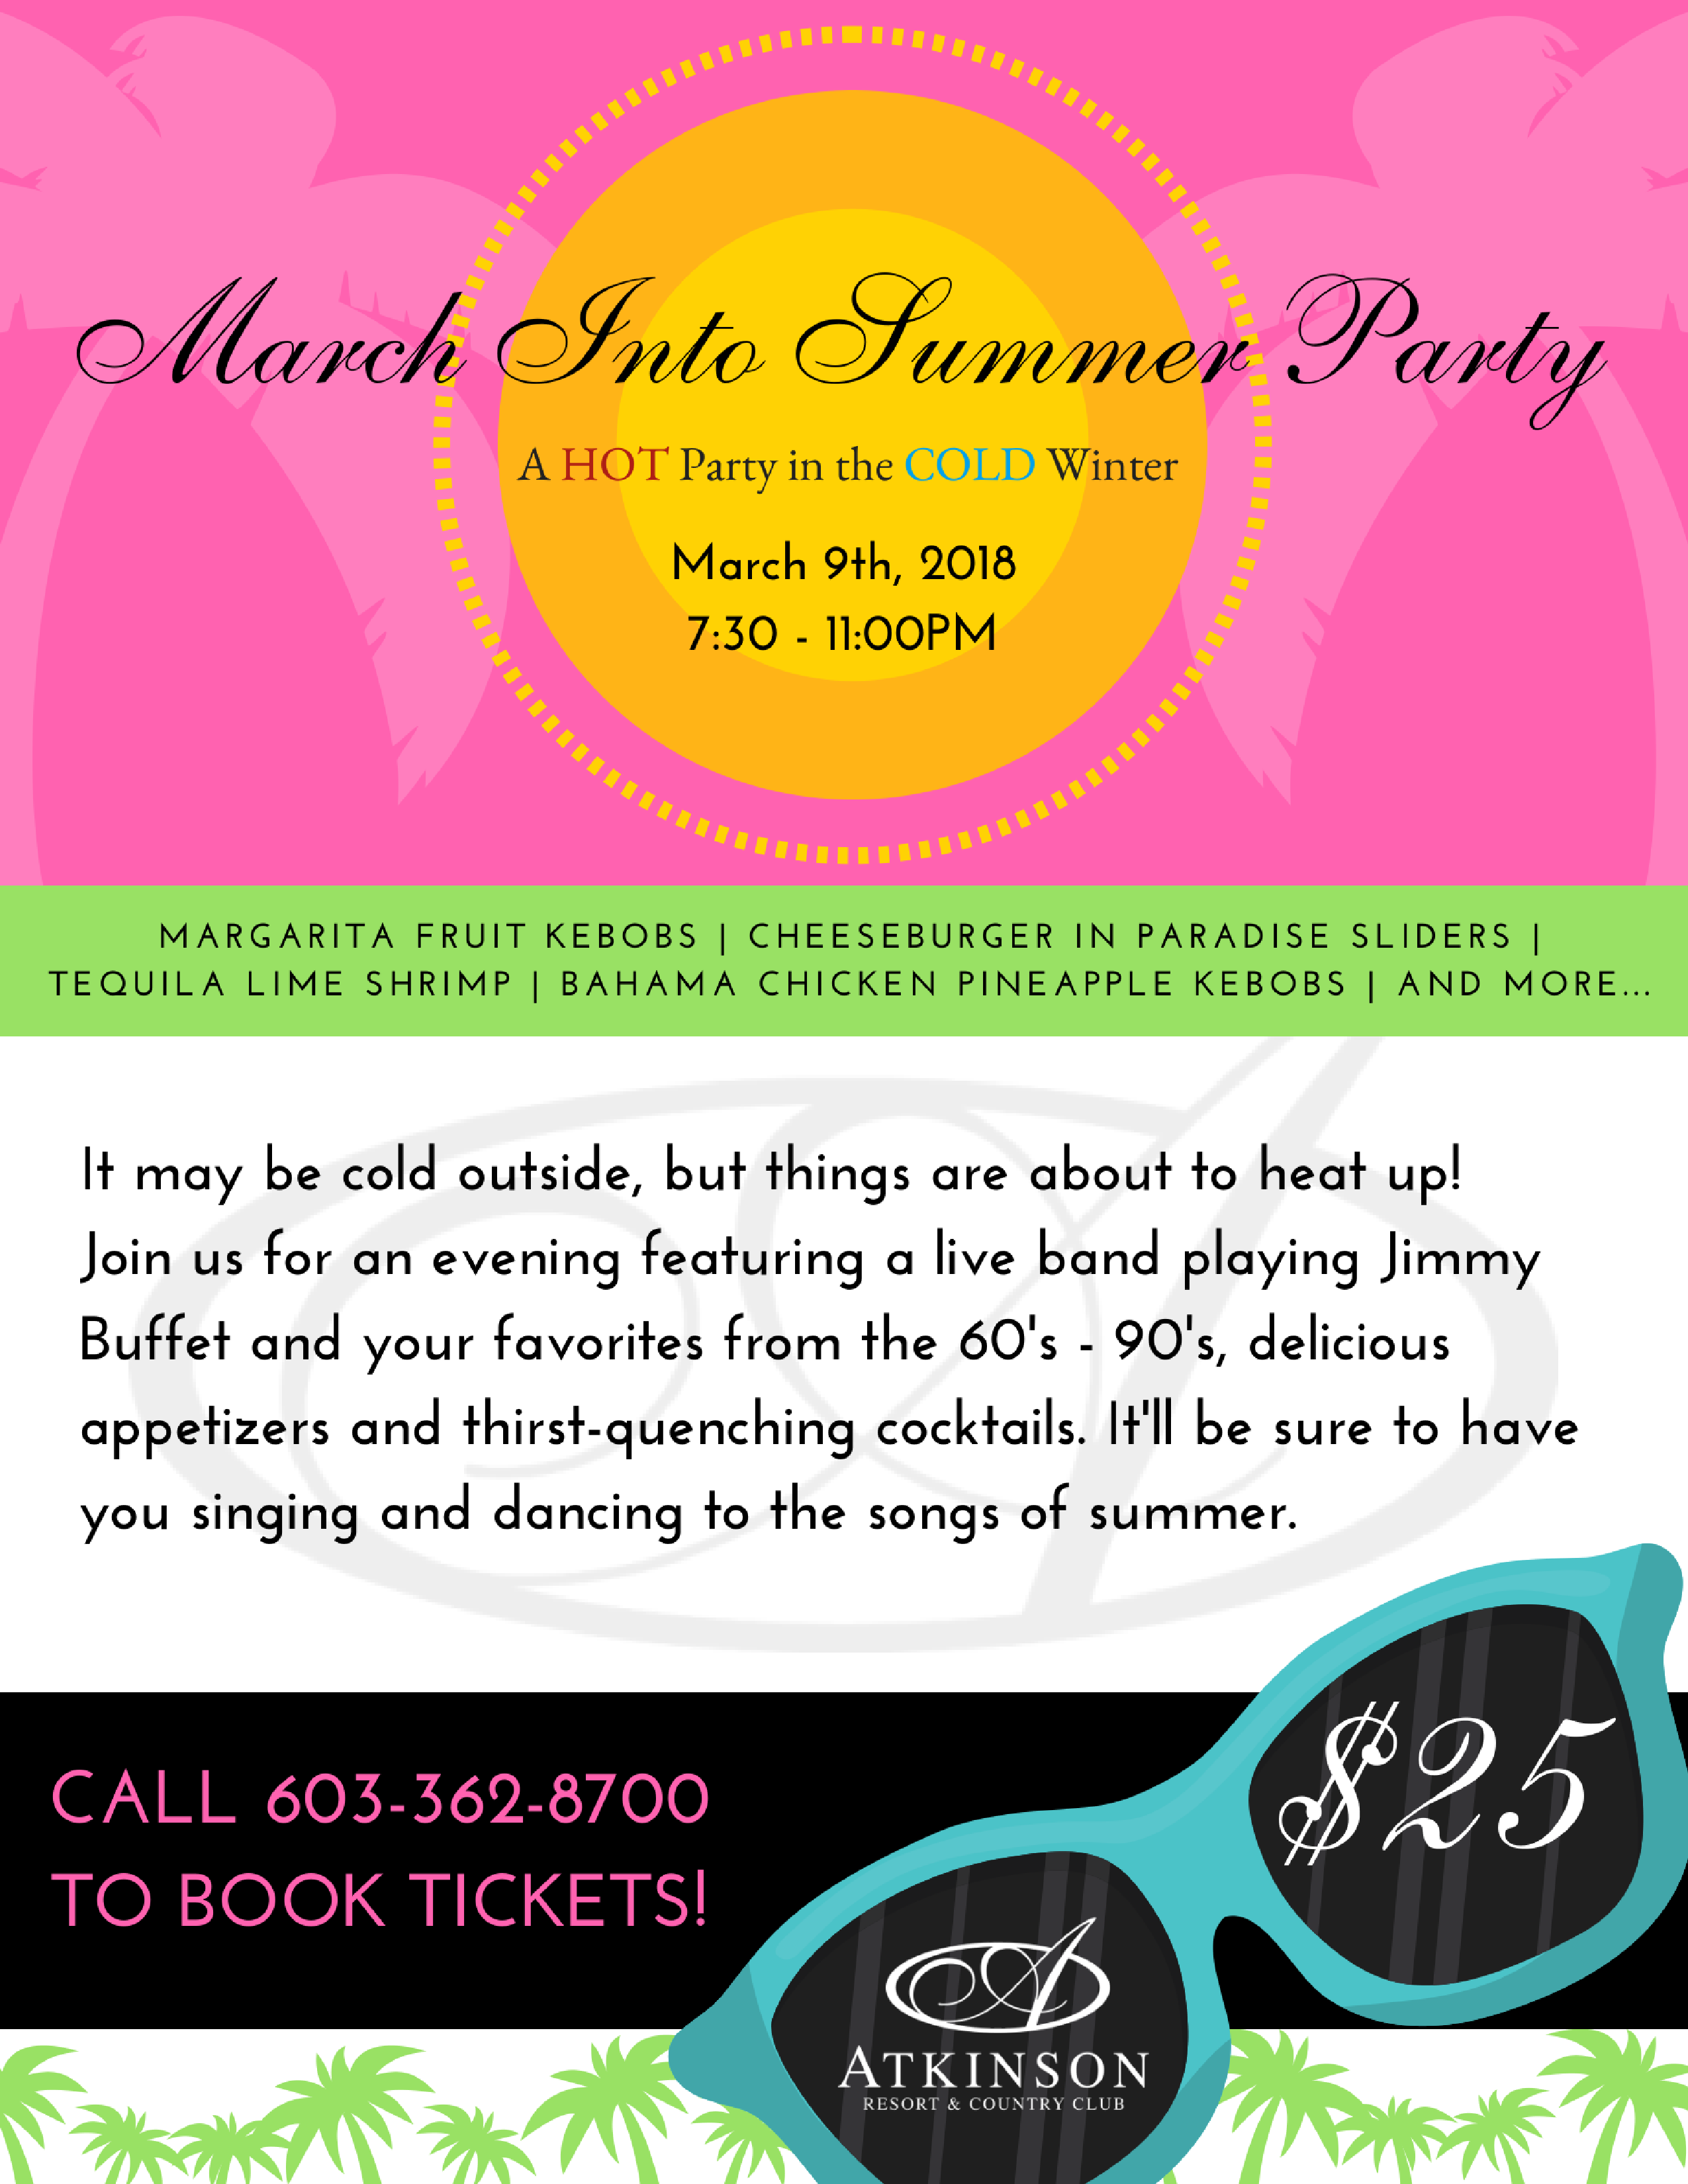 ACC-updated-March-Into-Summer-Party-Full-Size.png